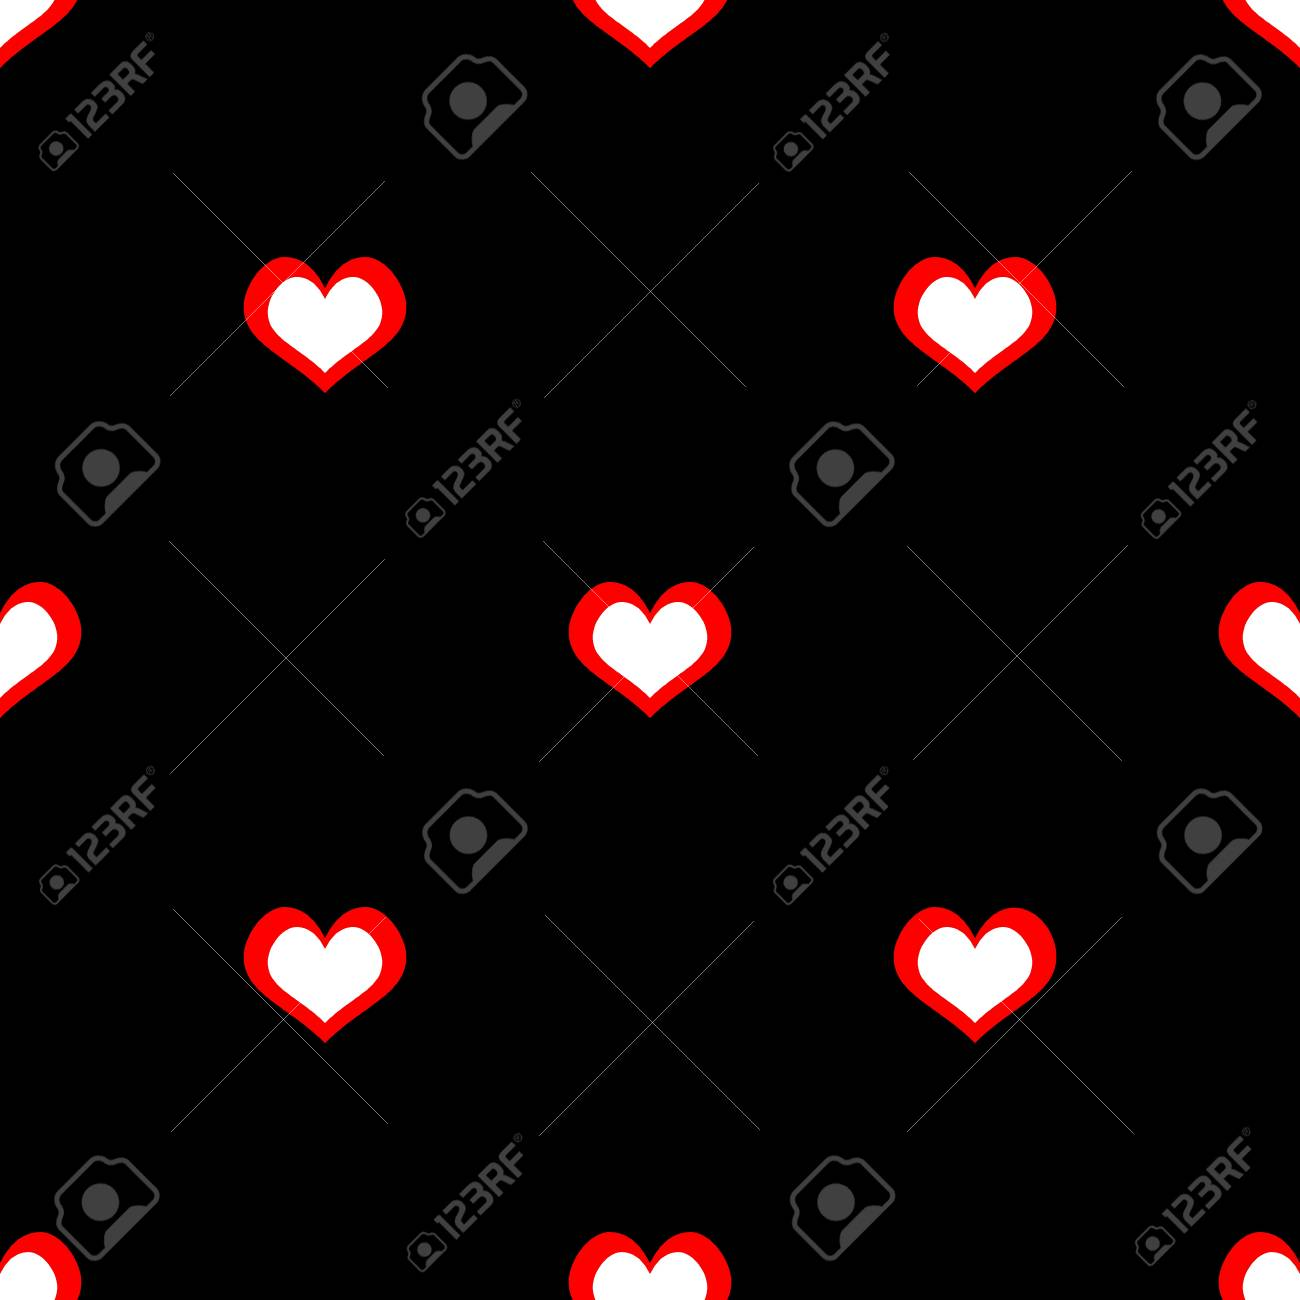 Tile Vector Pattern With Red And White Hearts On Black Background